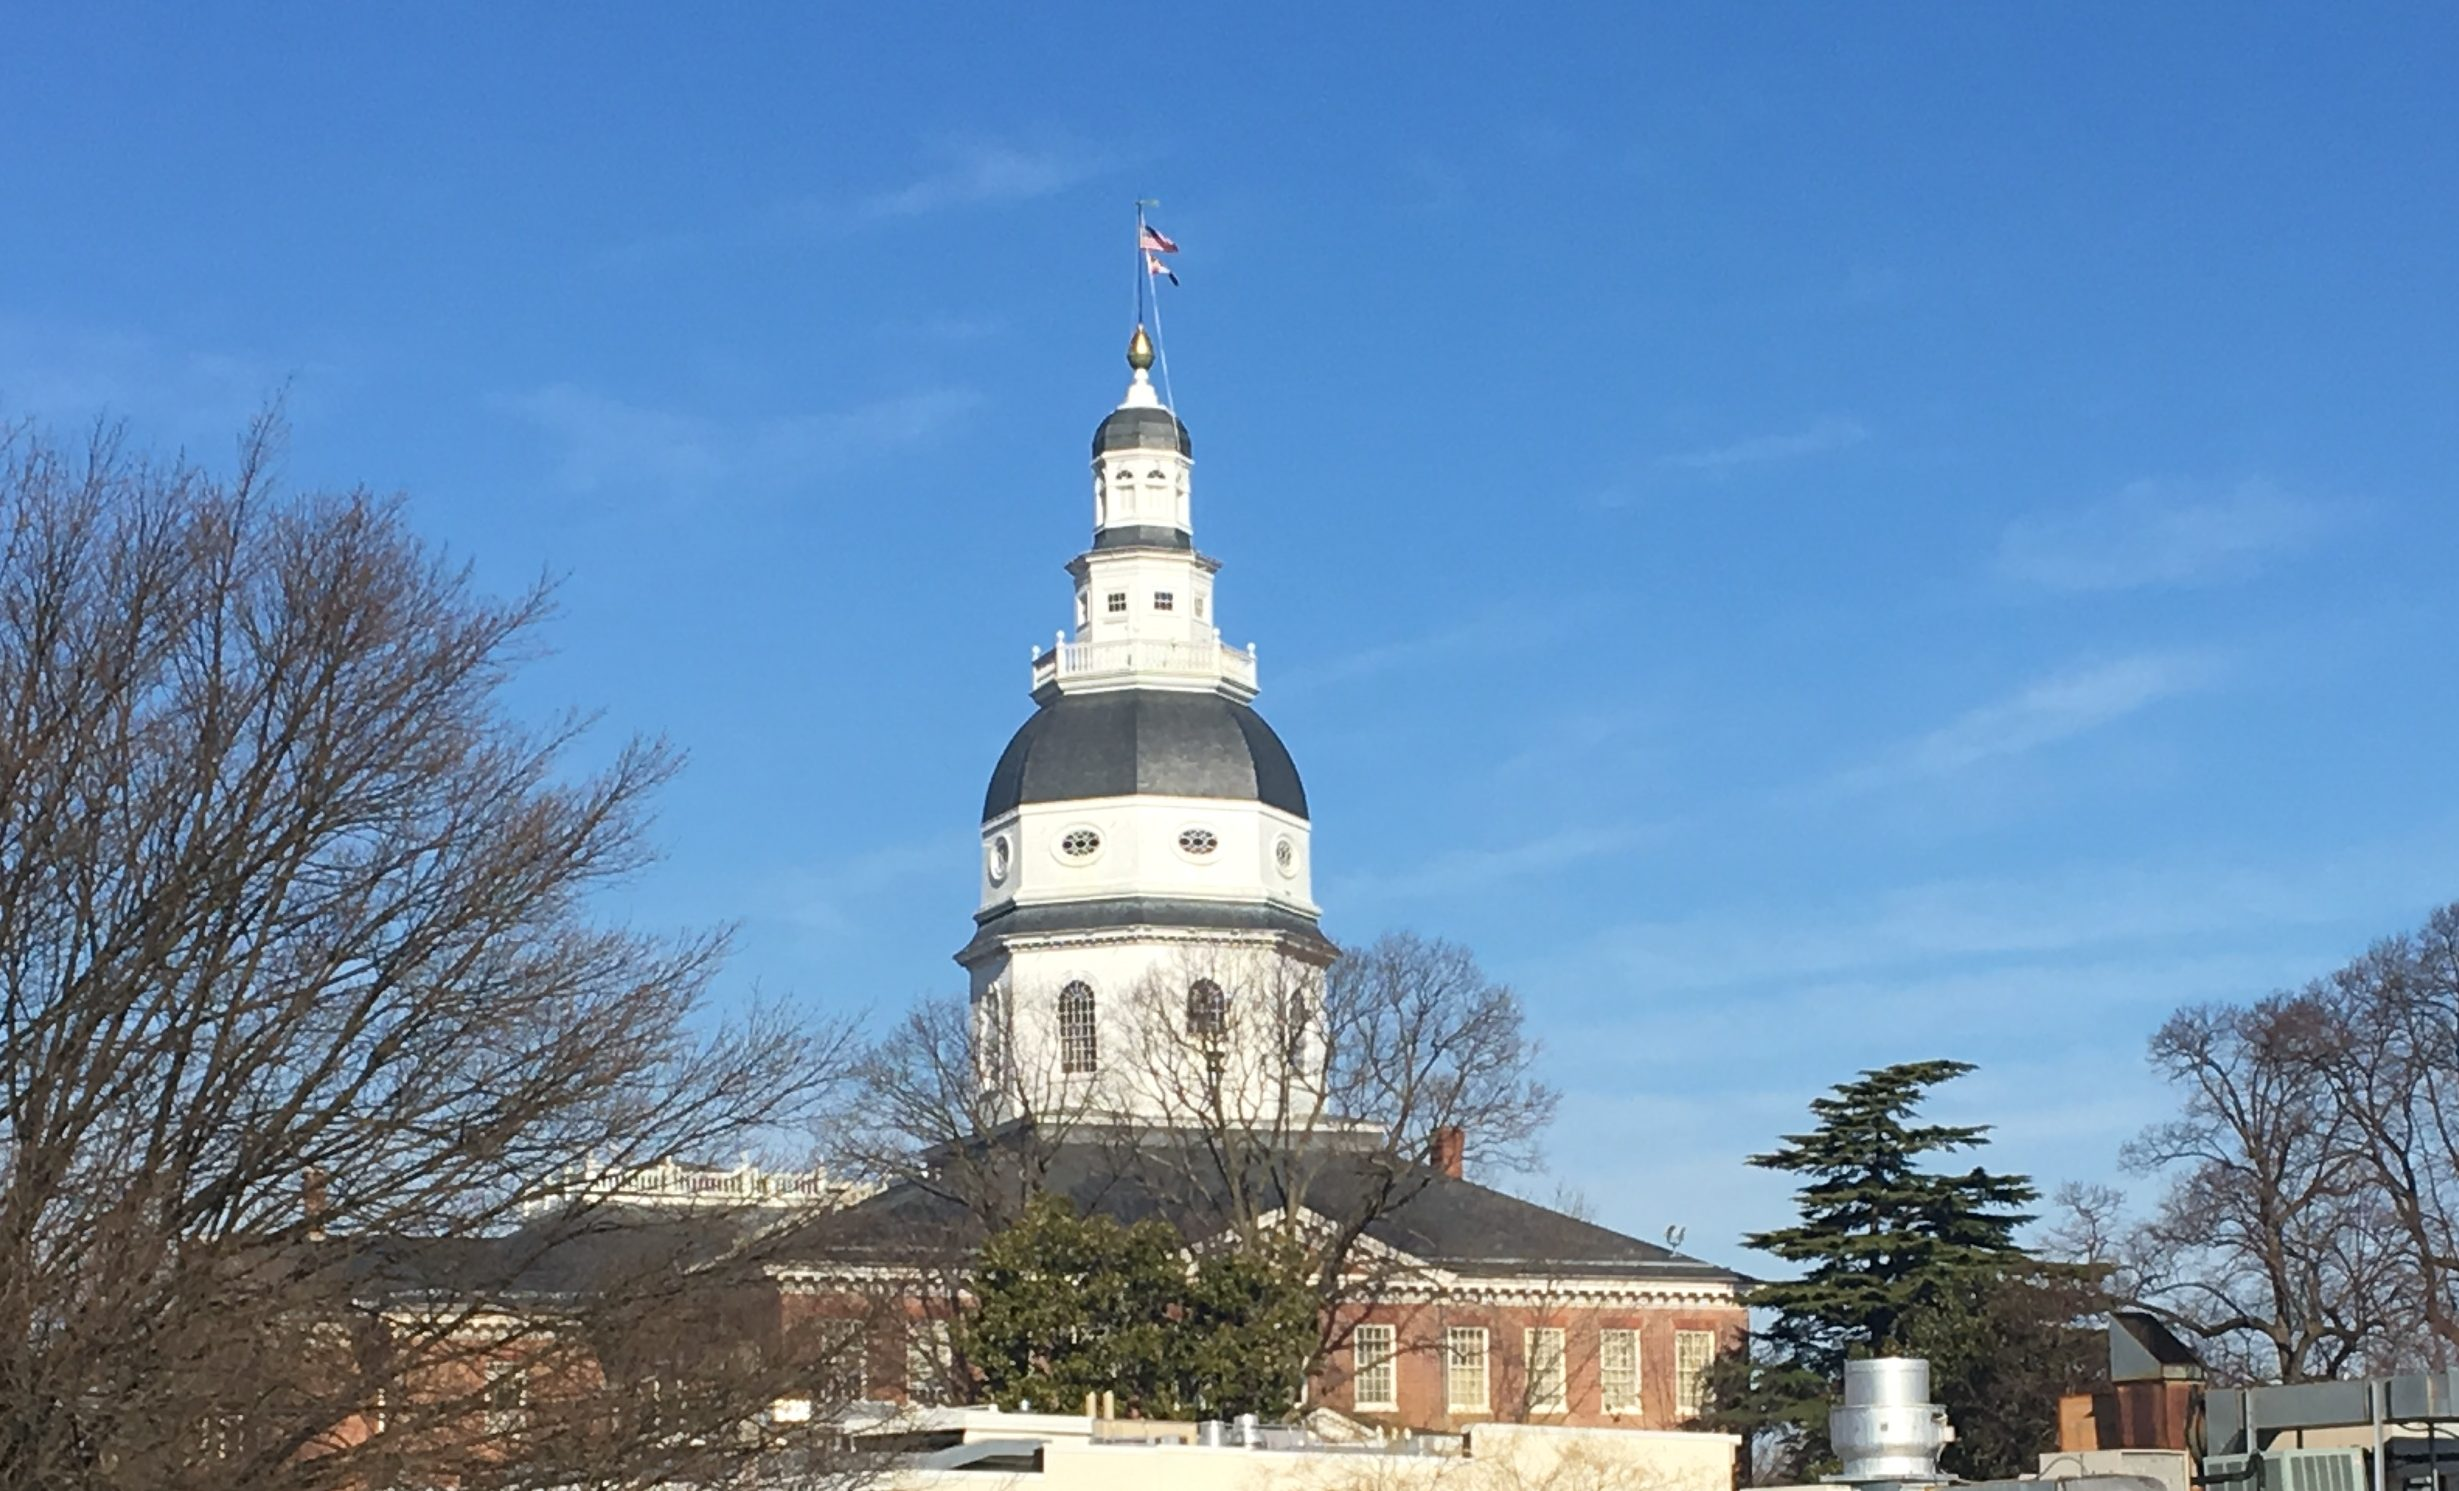 State Roundup: 54 new Covid-19 cases; Hogan demands social distancing